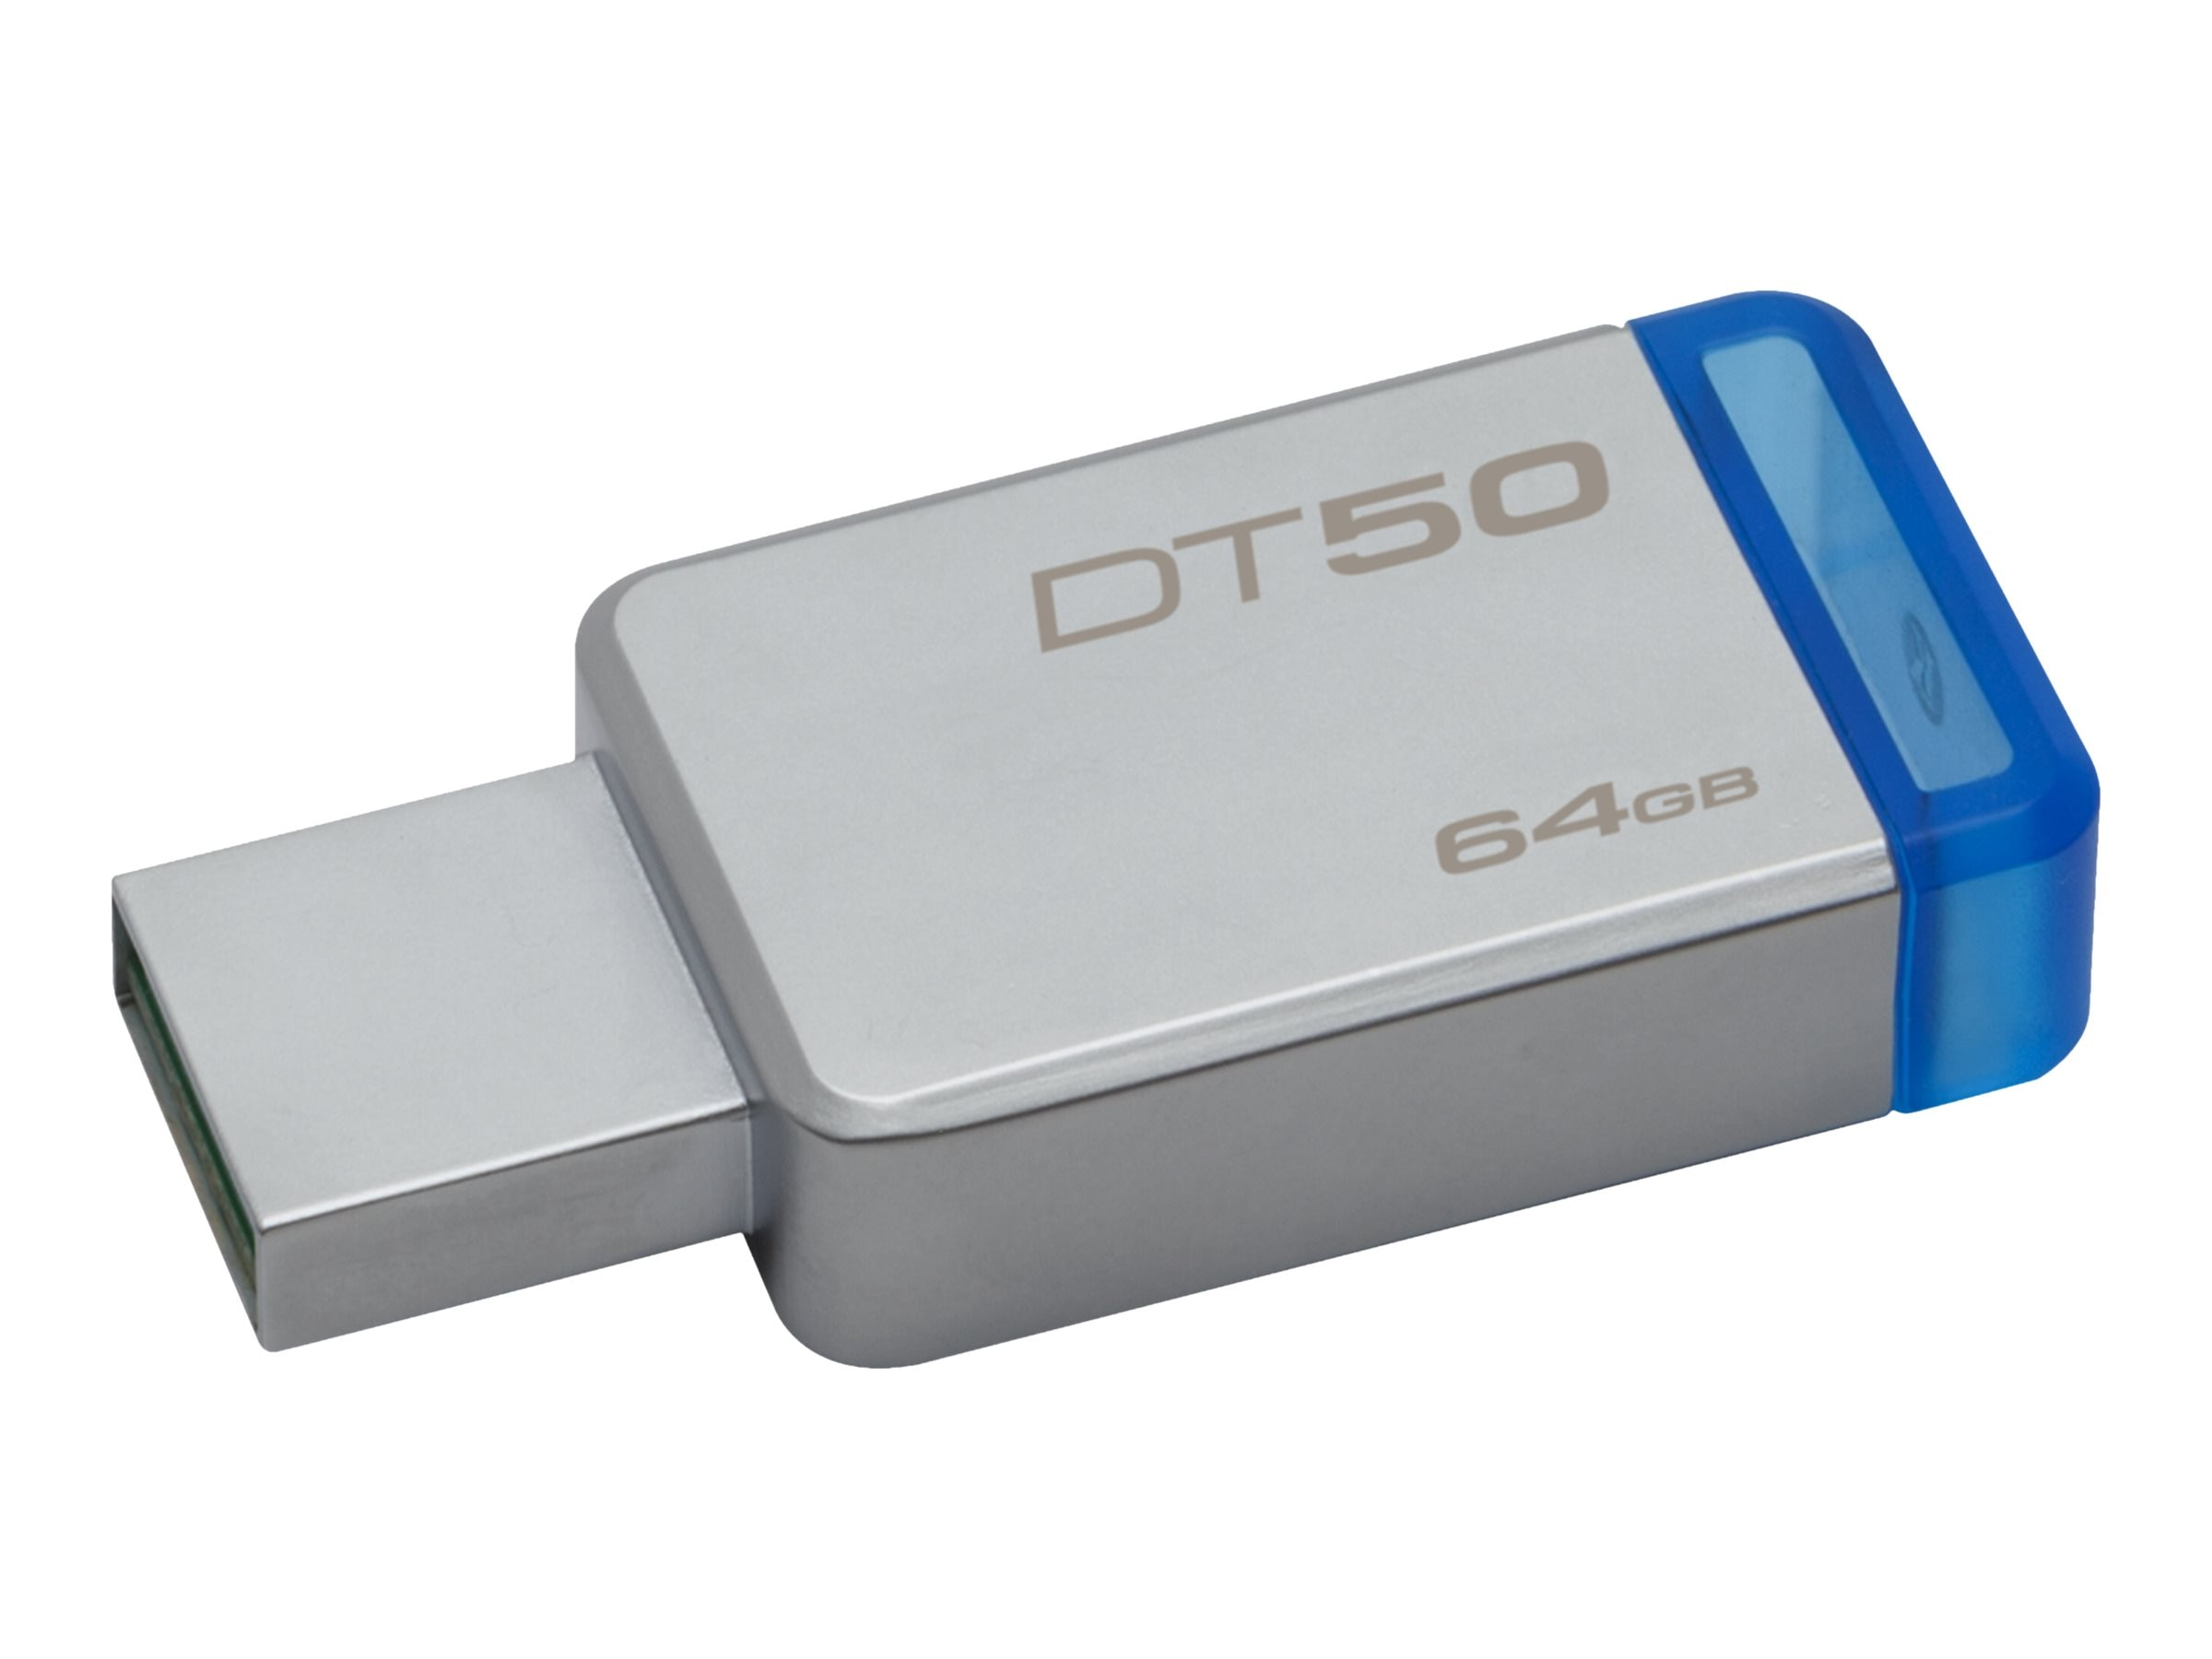 Kingston 64GB DataTraveler 50 USB 3.0 Flash Drive, Blue